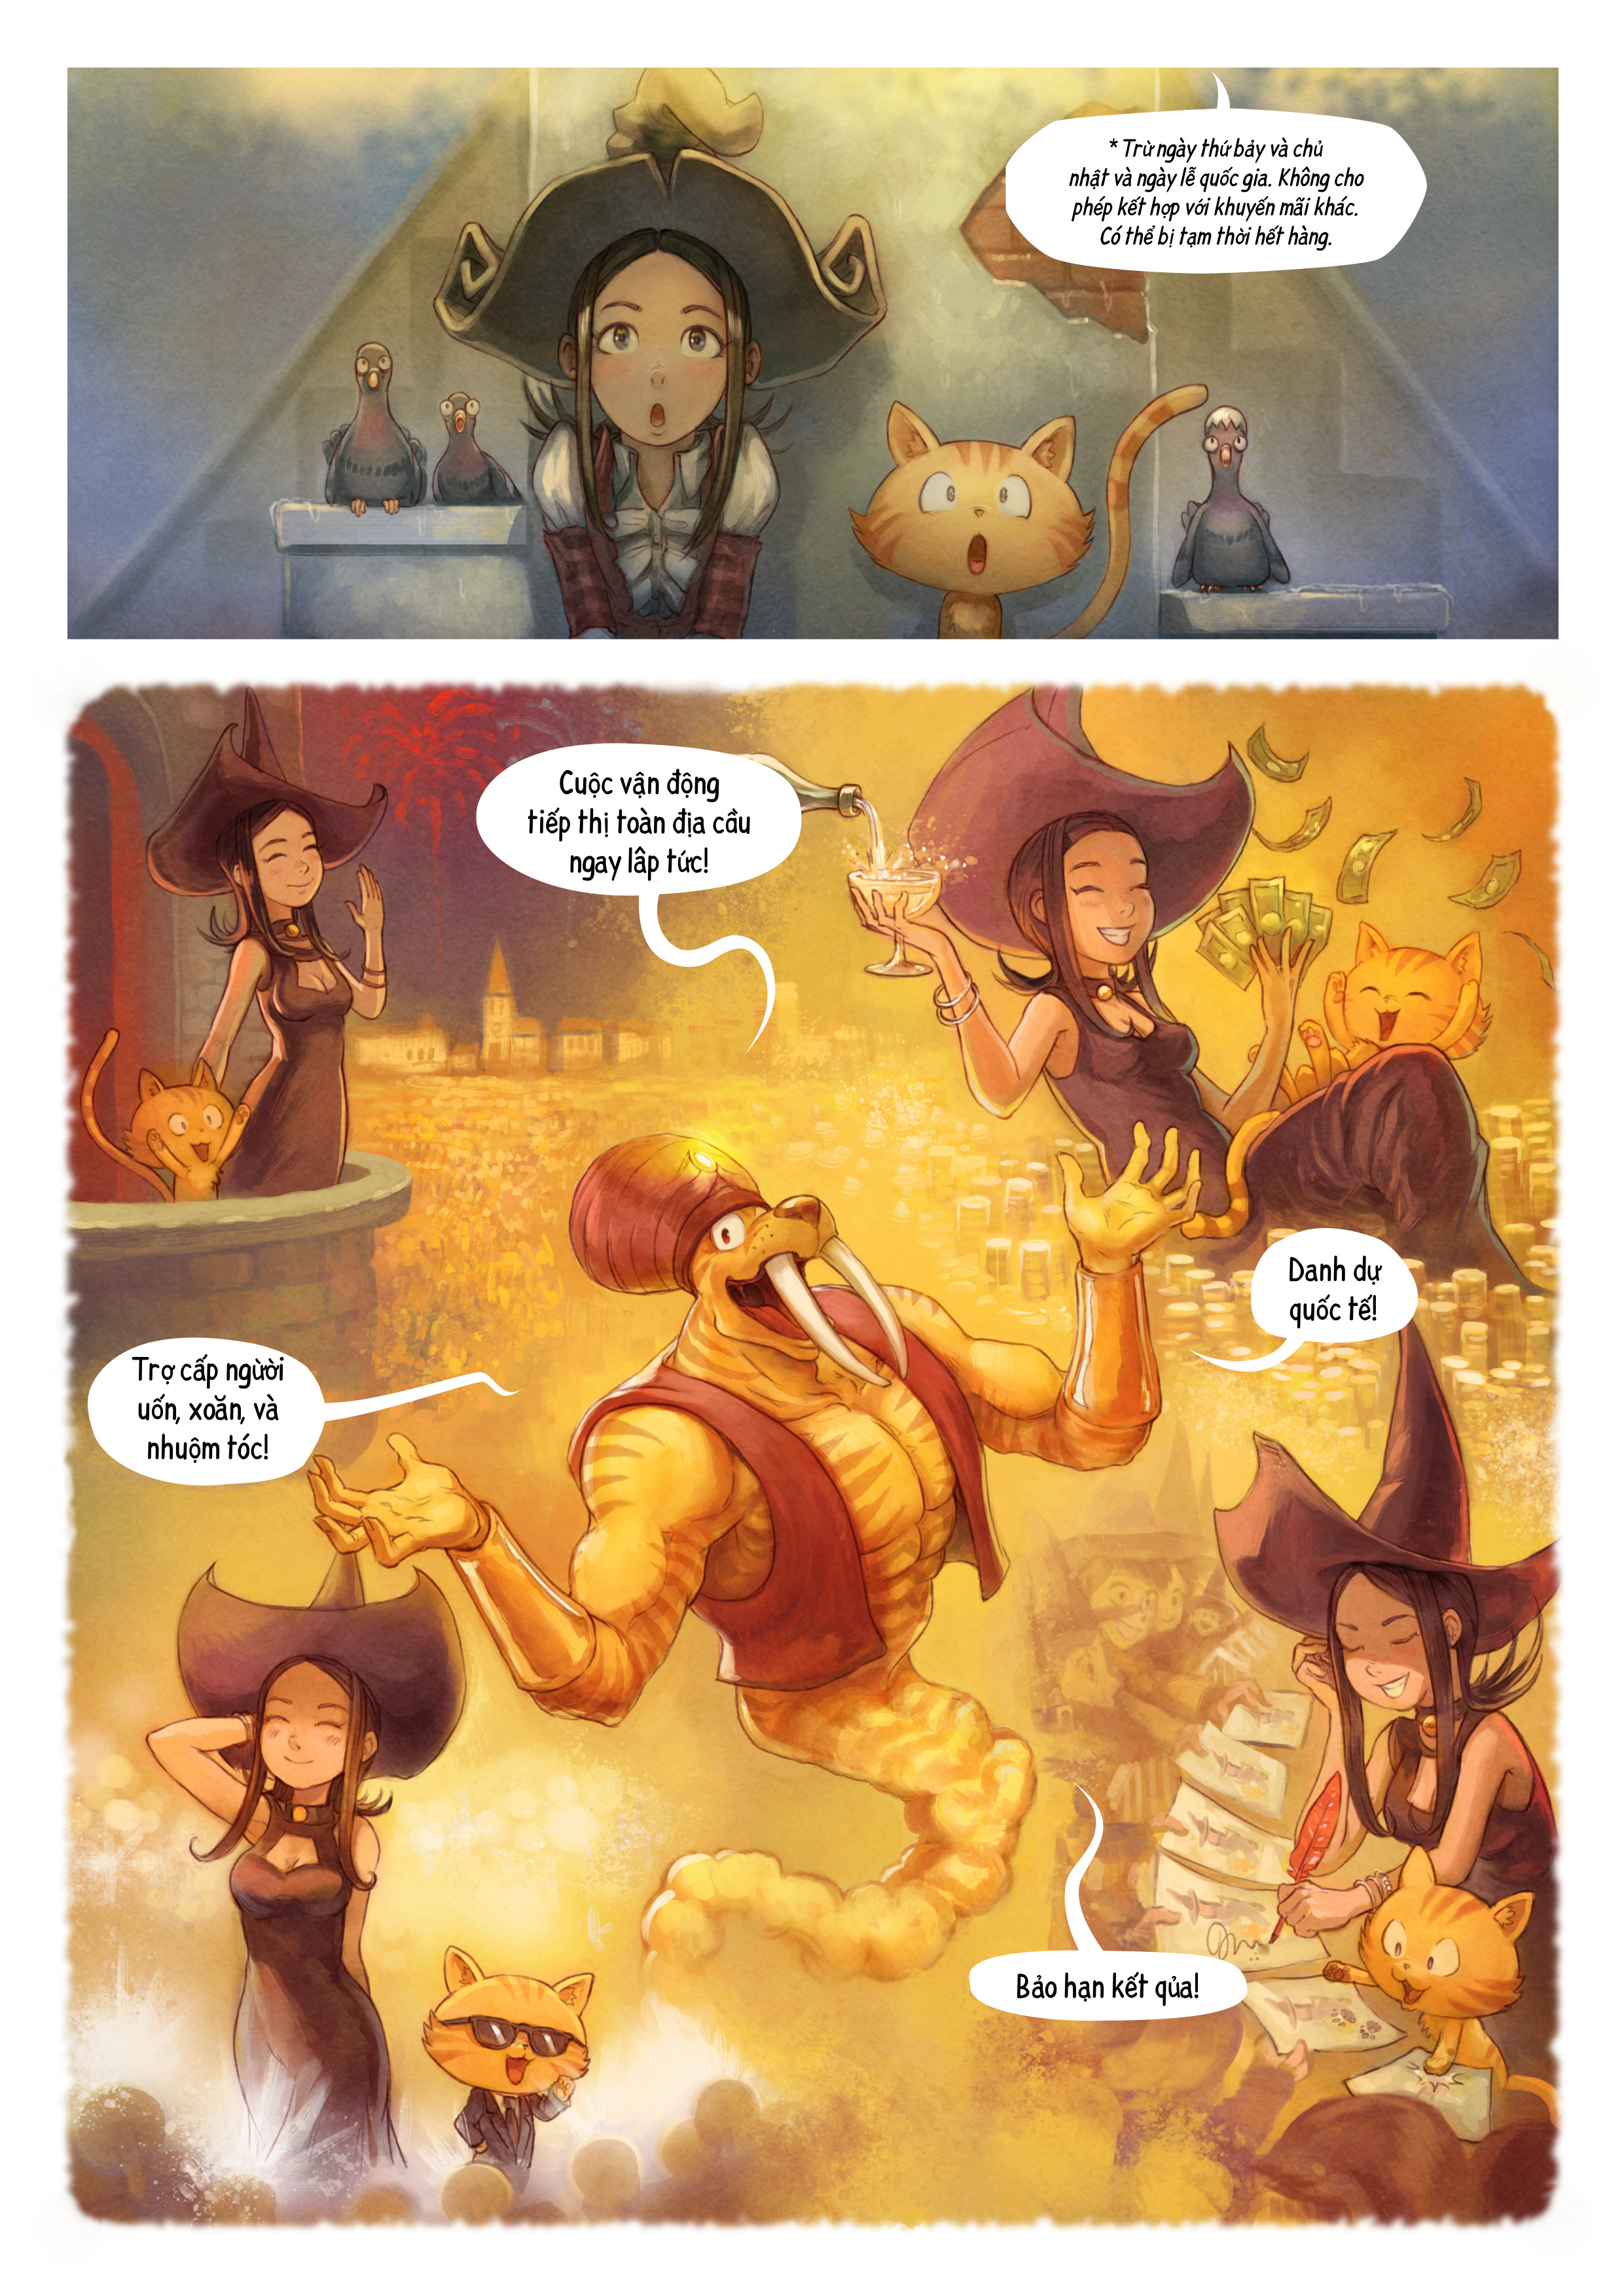 A webcomic page of Pepper&Carrot, Tập 23 [vi], trang 4